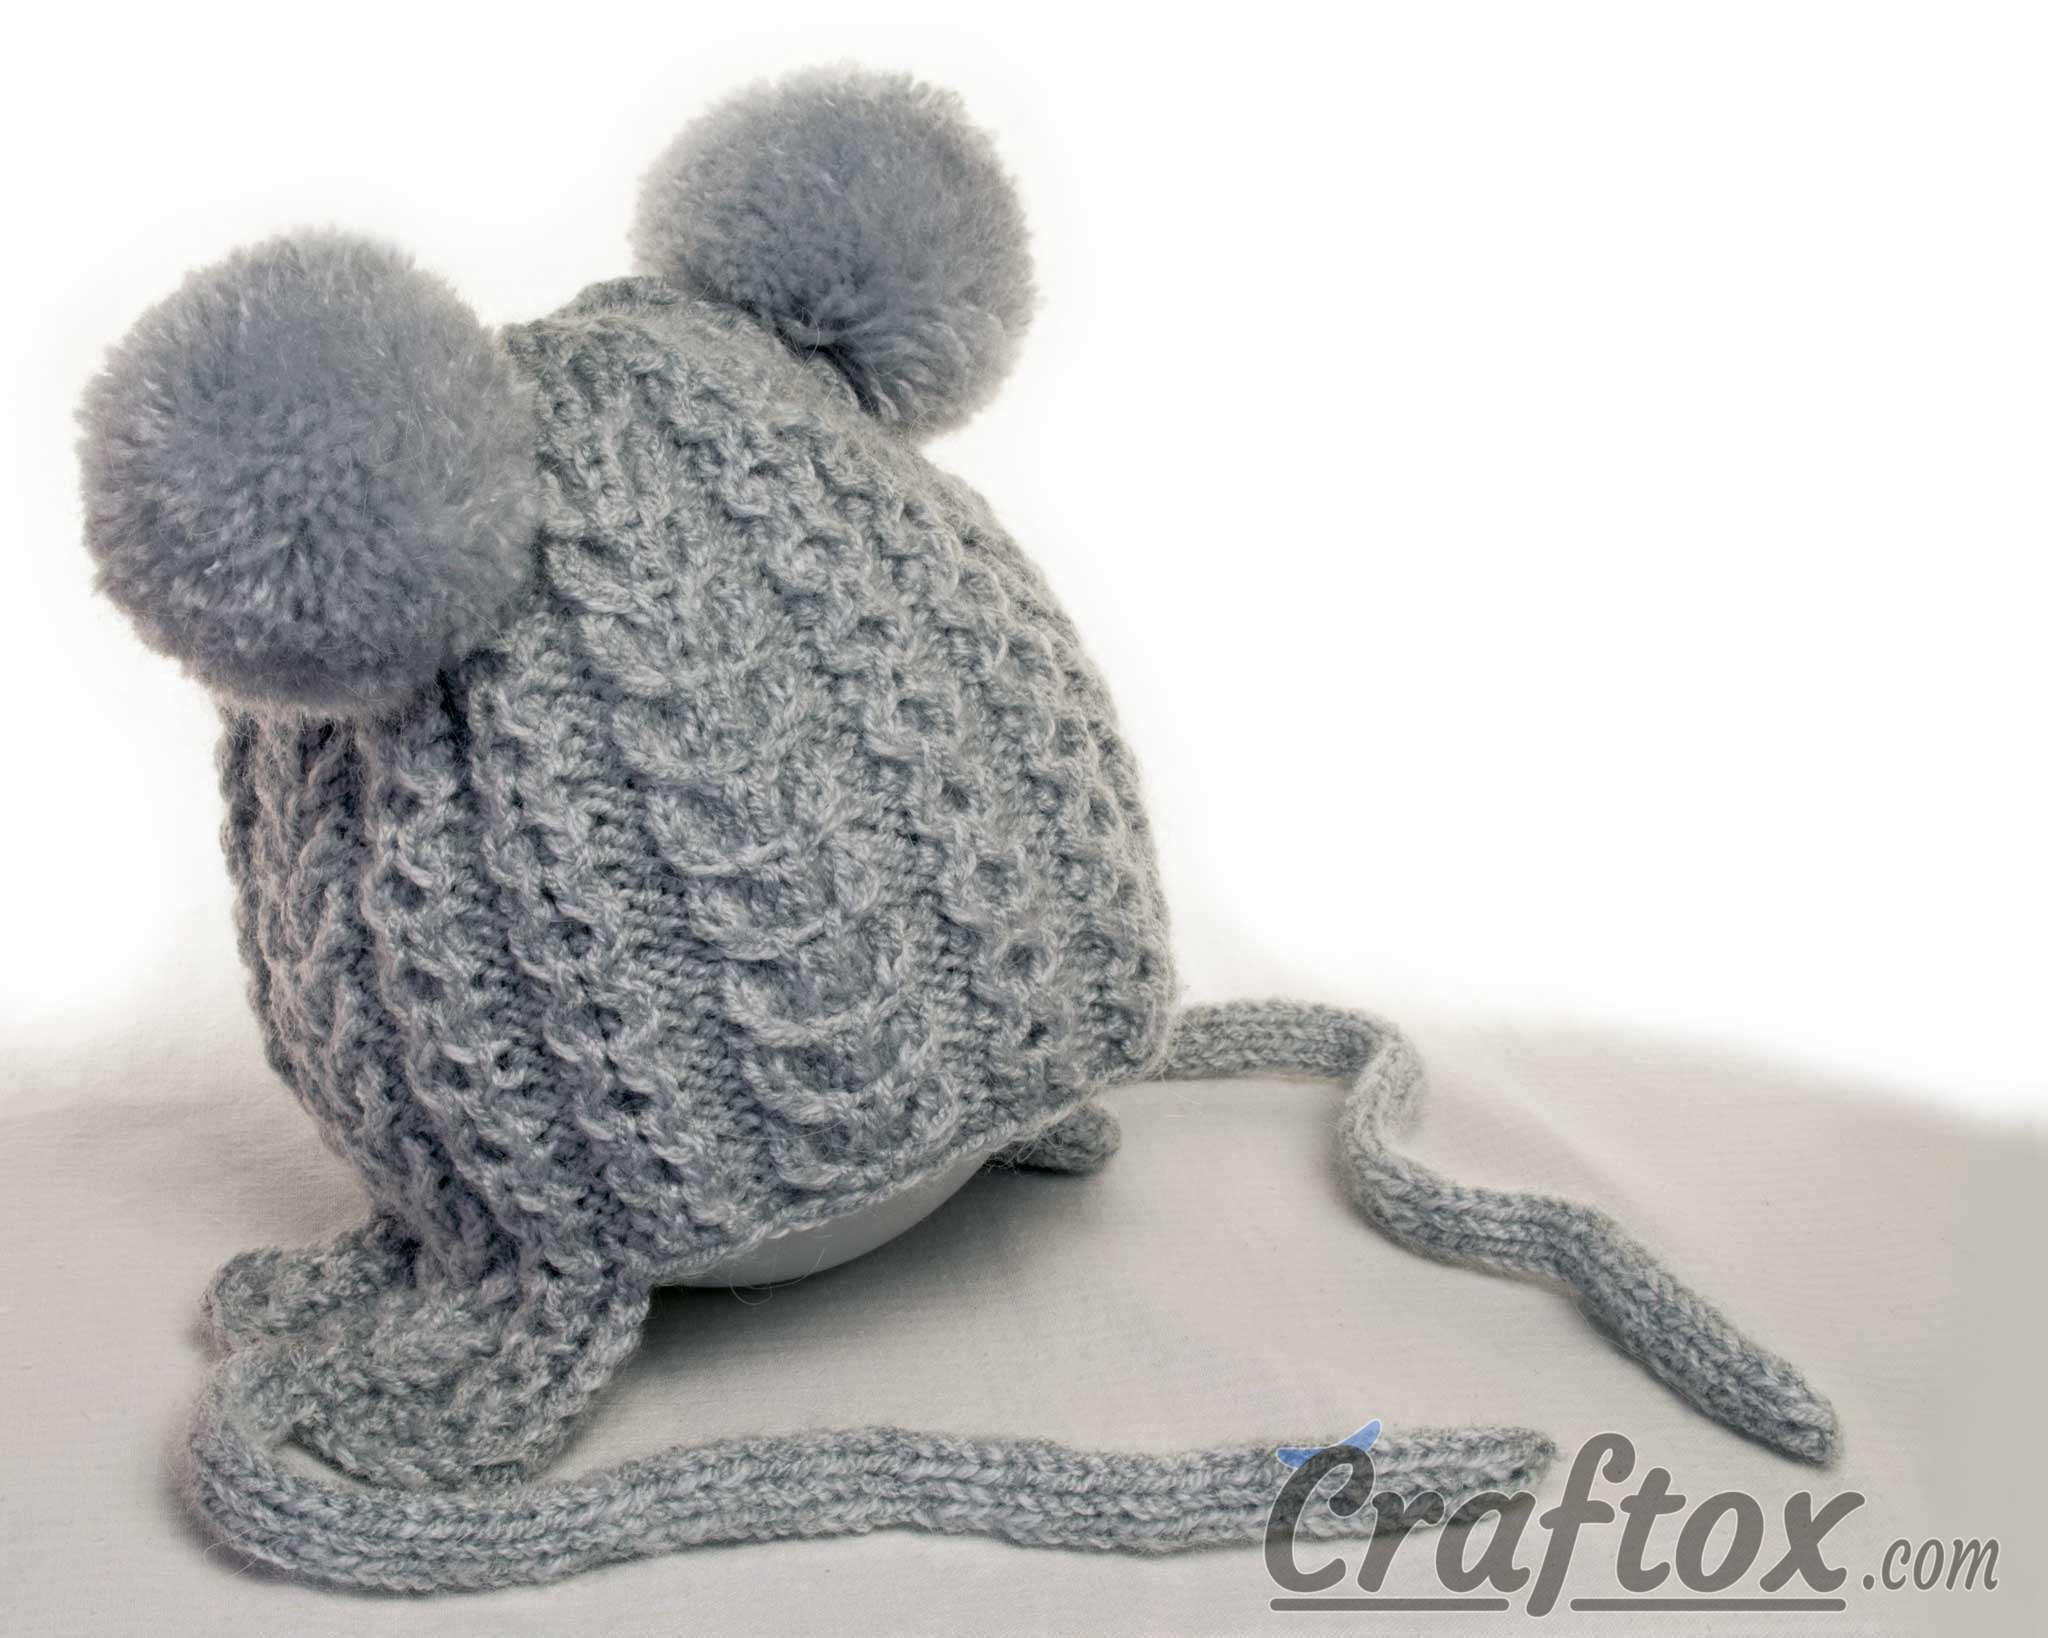 Knitting winter hat with pom poms for child knitting pinterest knitting winter hat with pom poms for child bankloansurffo Choice Image